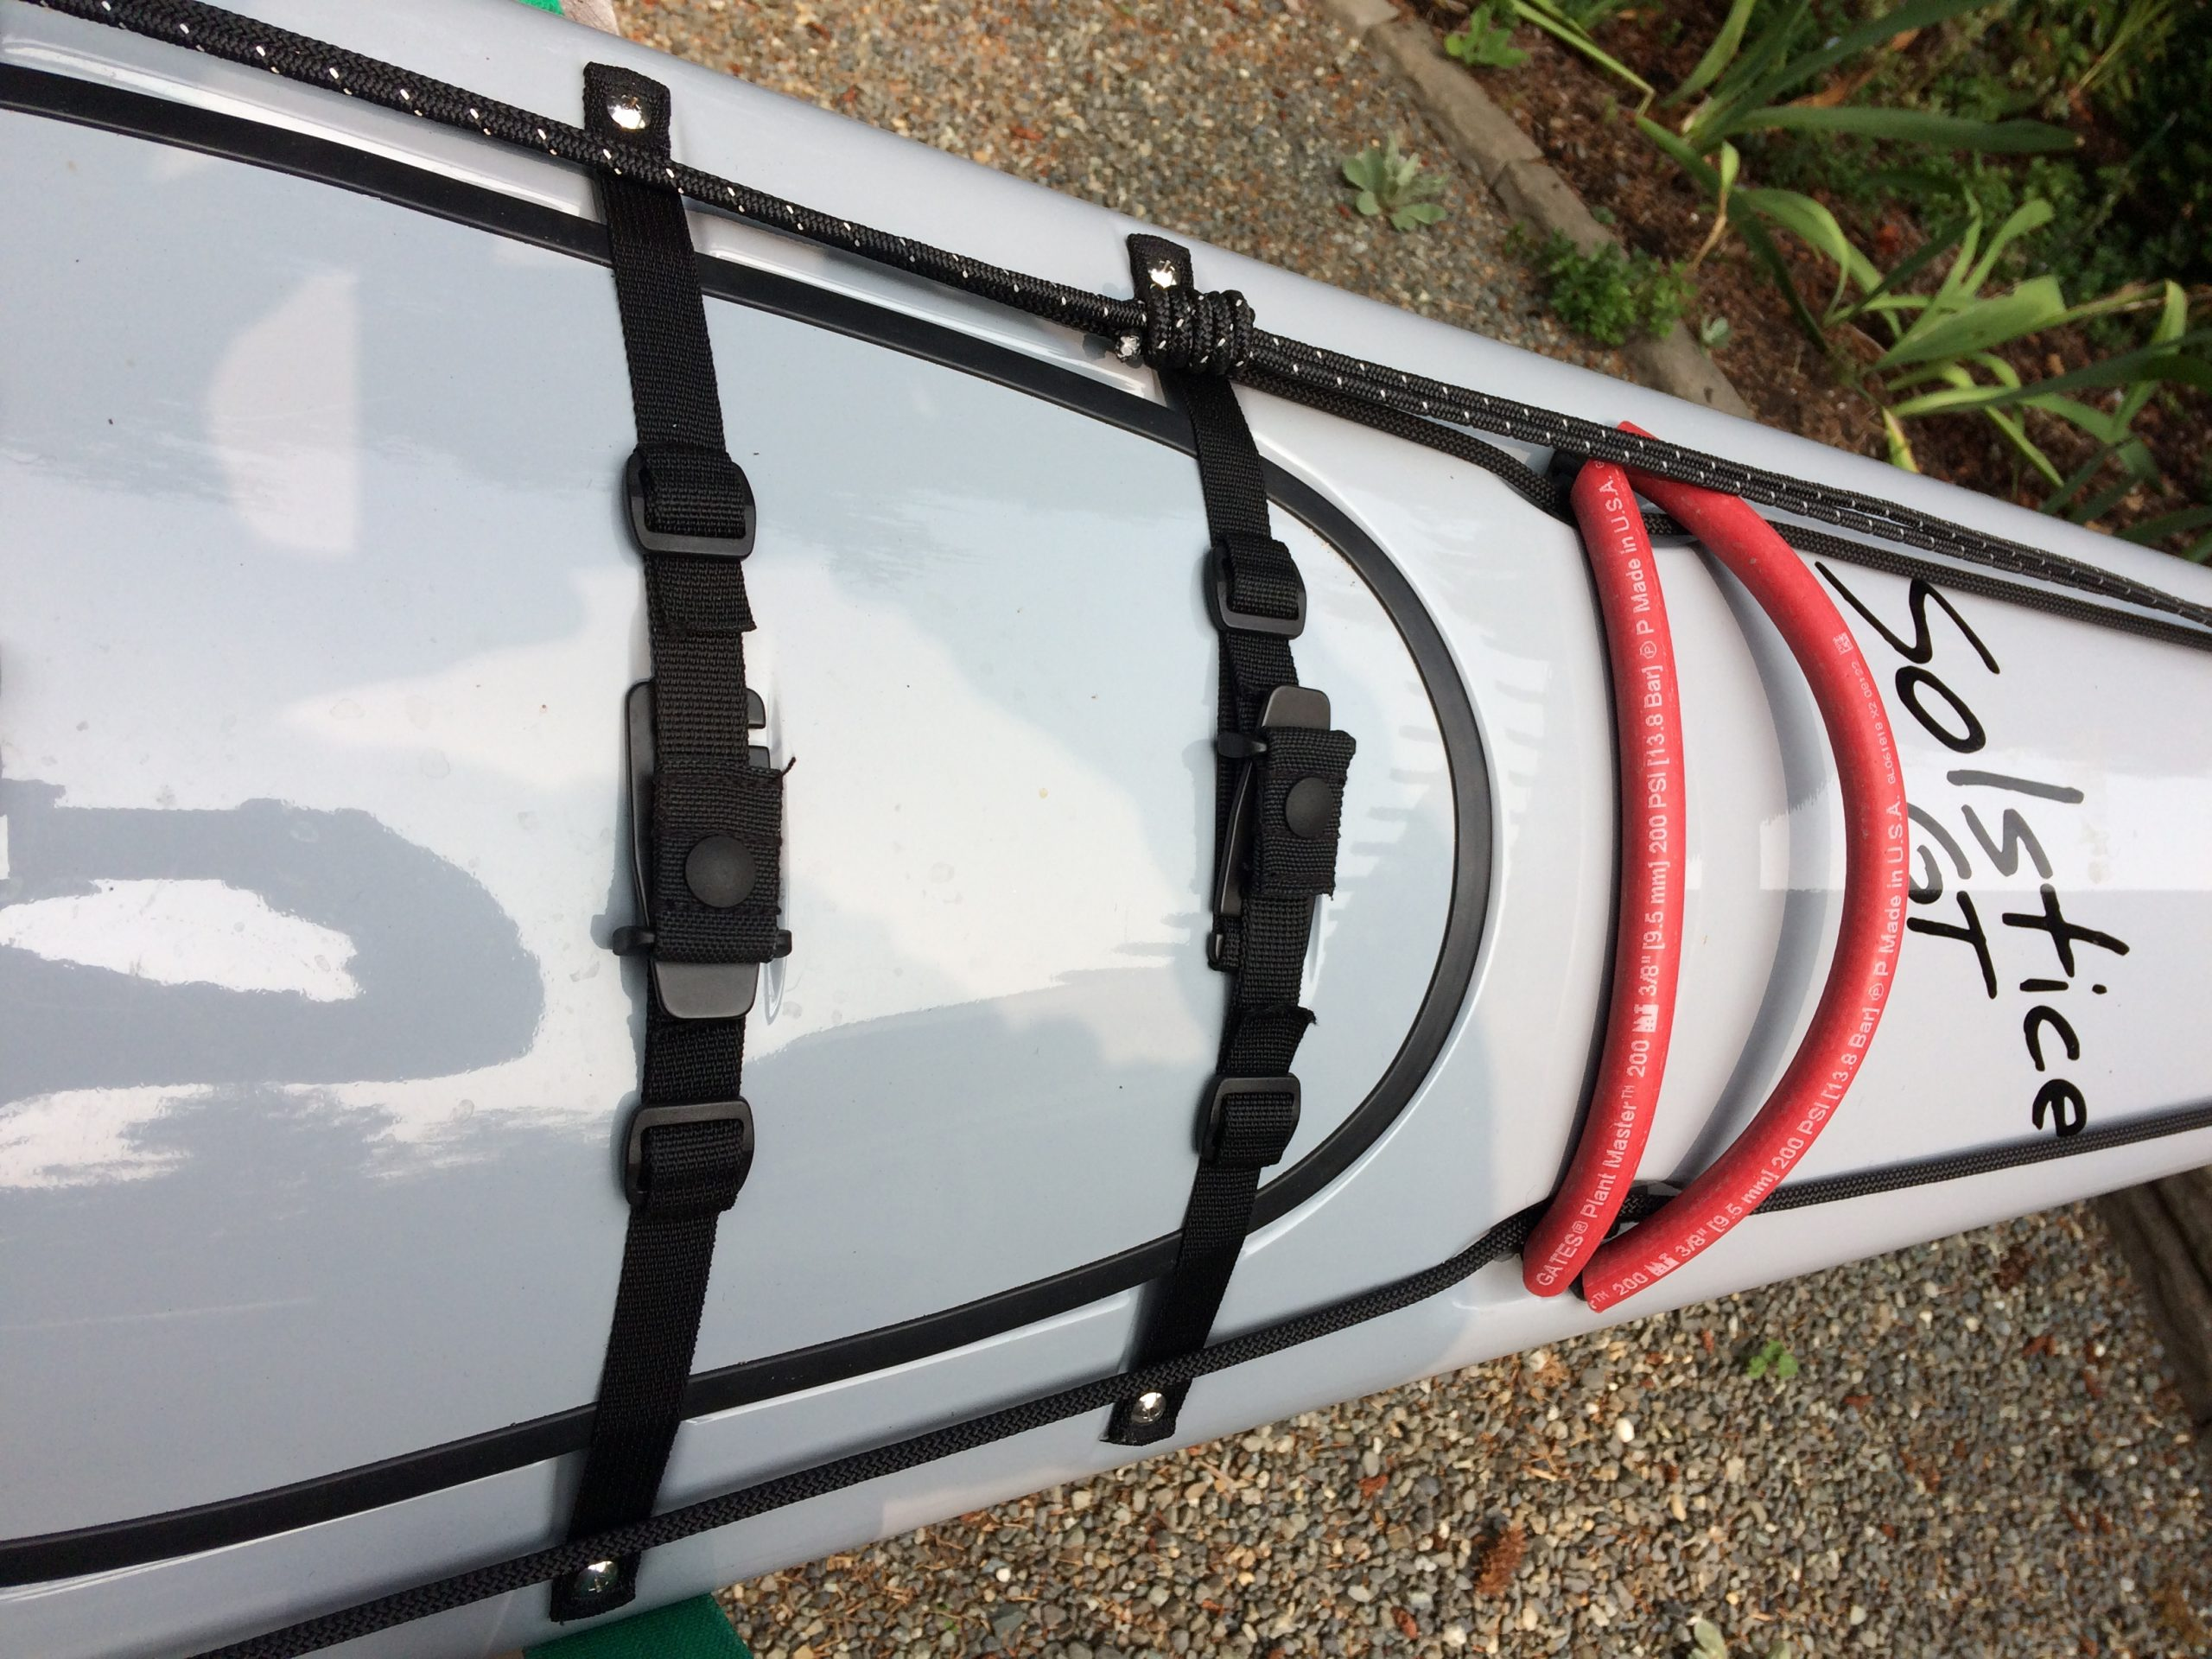 Deck of kayak showing a Paddle Park